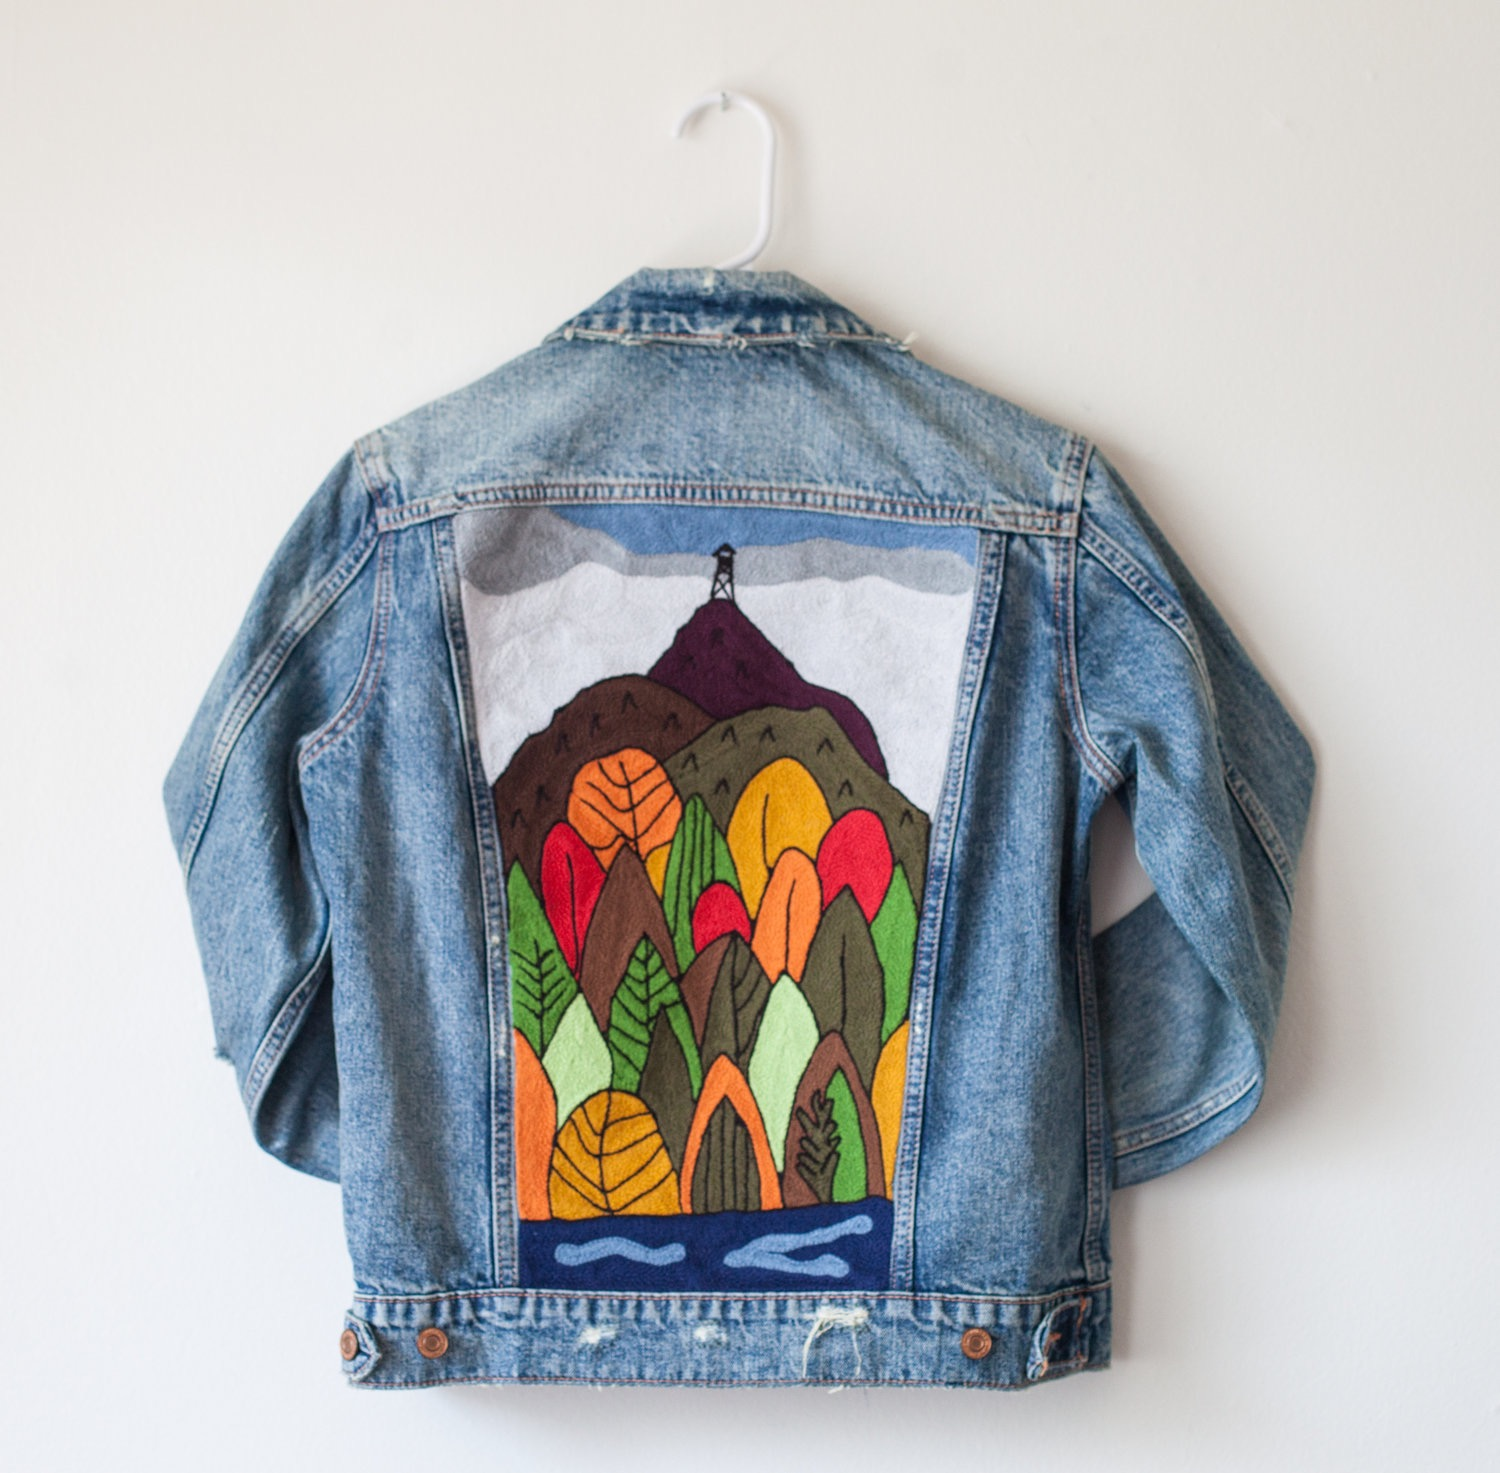 A photograph of a jean jacket with an embroidered image of a forest on the back.